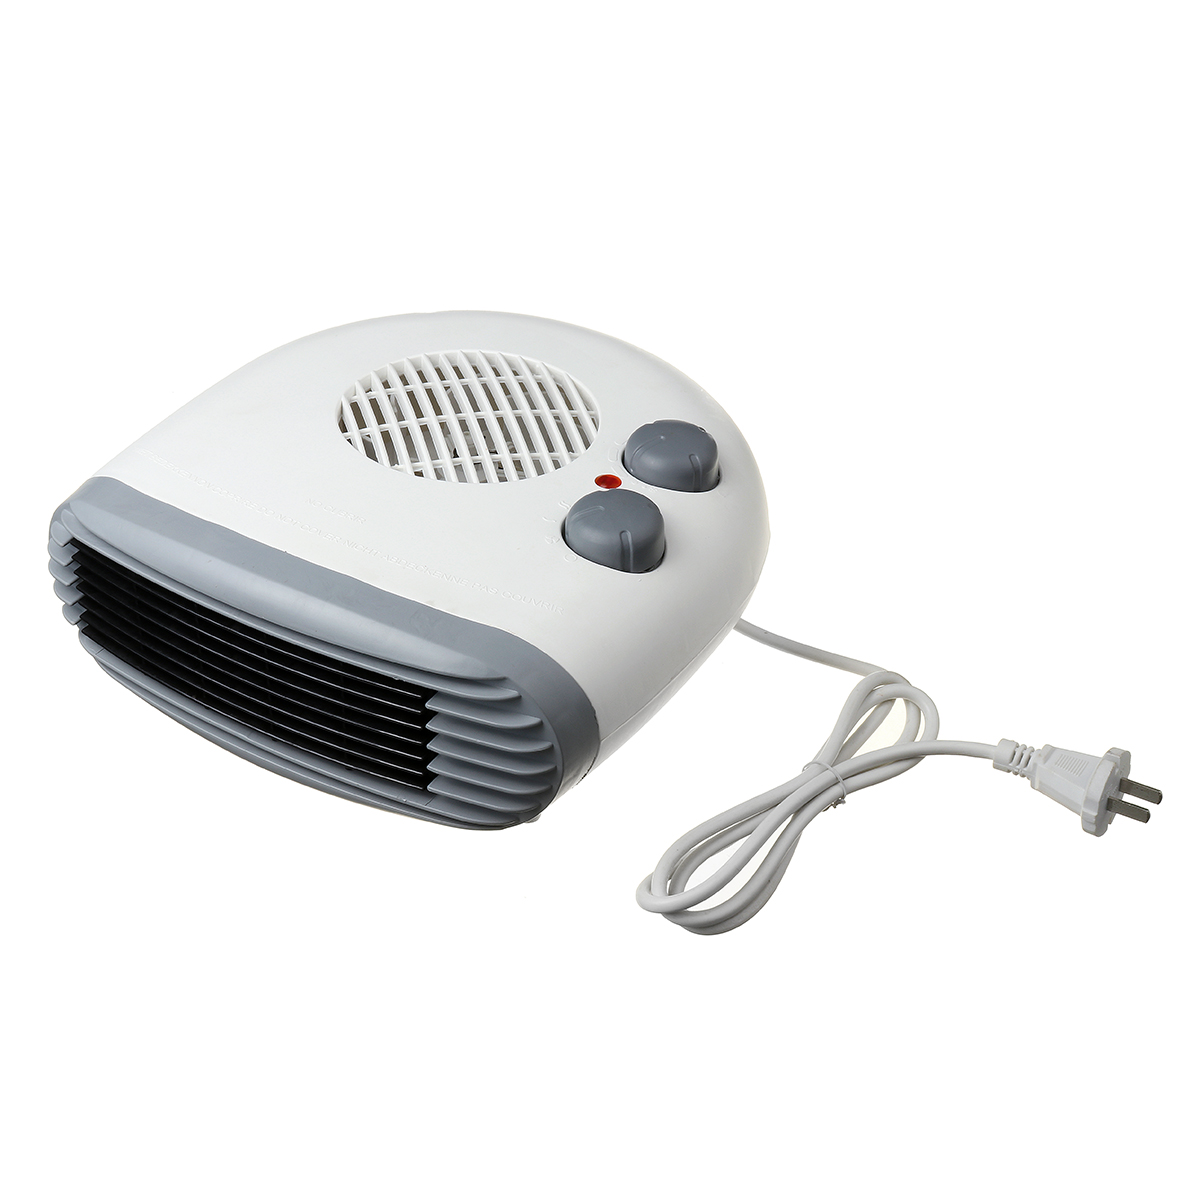 1800W Electric Heater 3 Heating Set Air Warmer Blower Fan Home Office Christmas Gift